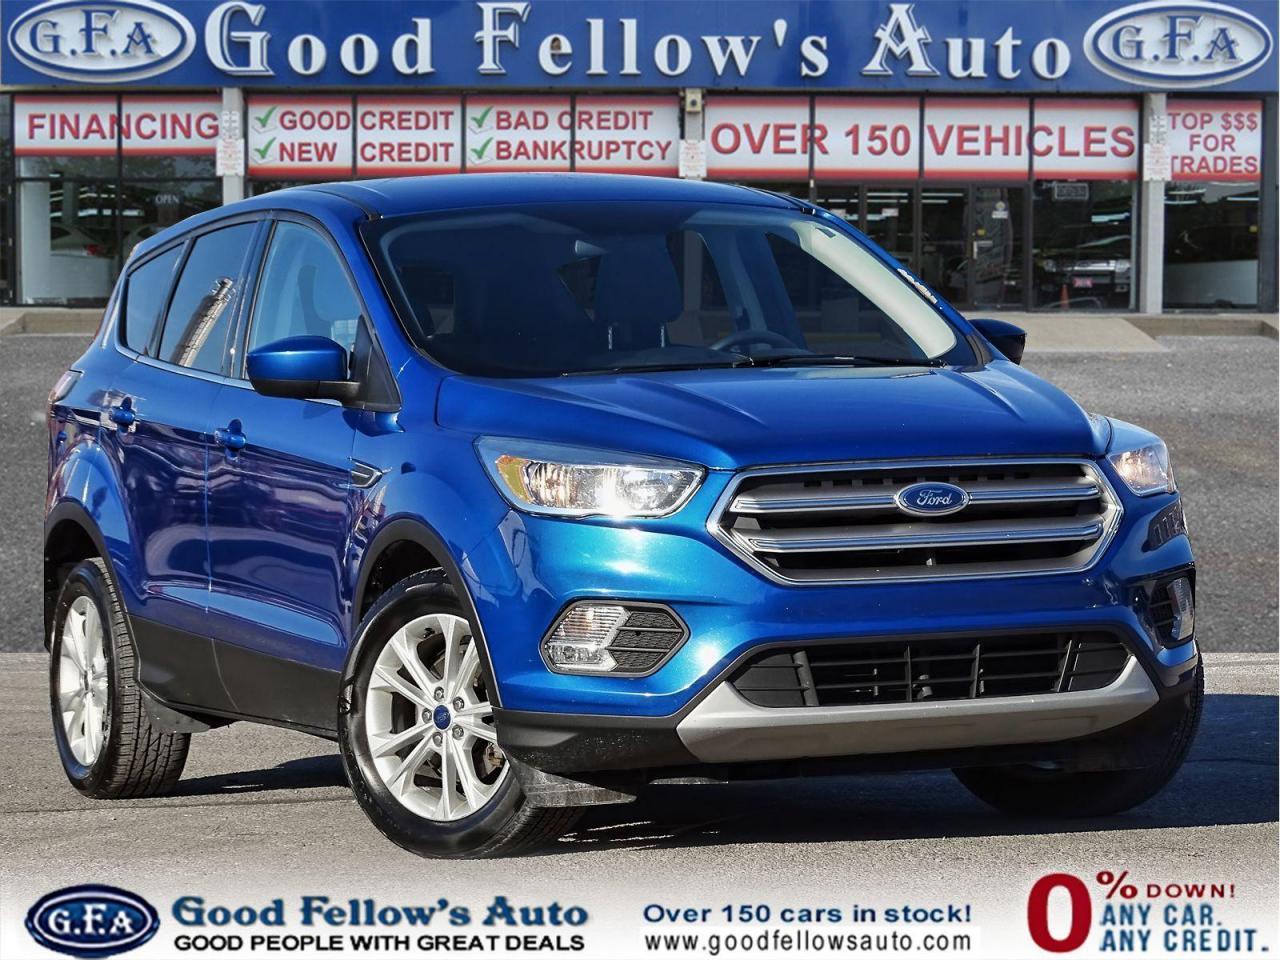 used 2017 Ford Escape car, priced at $13,400